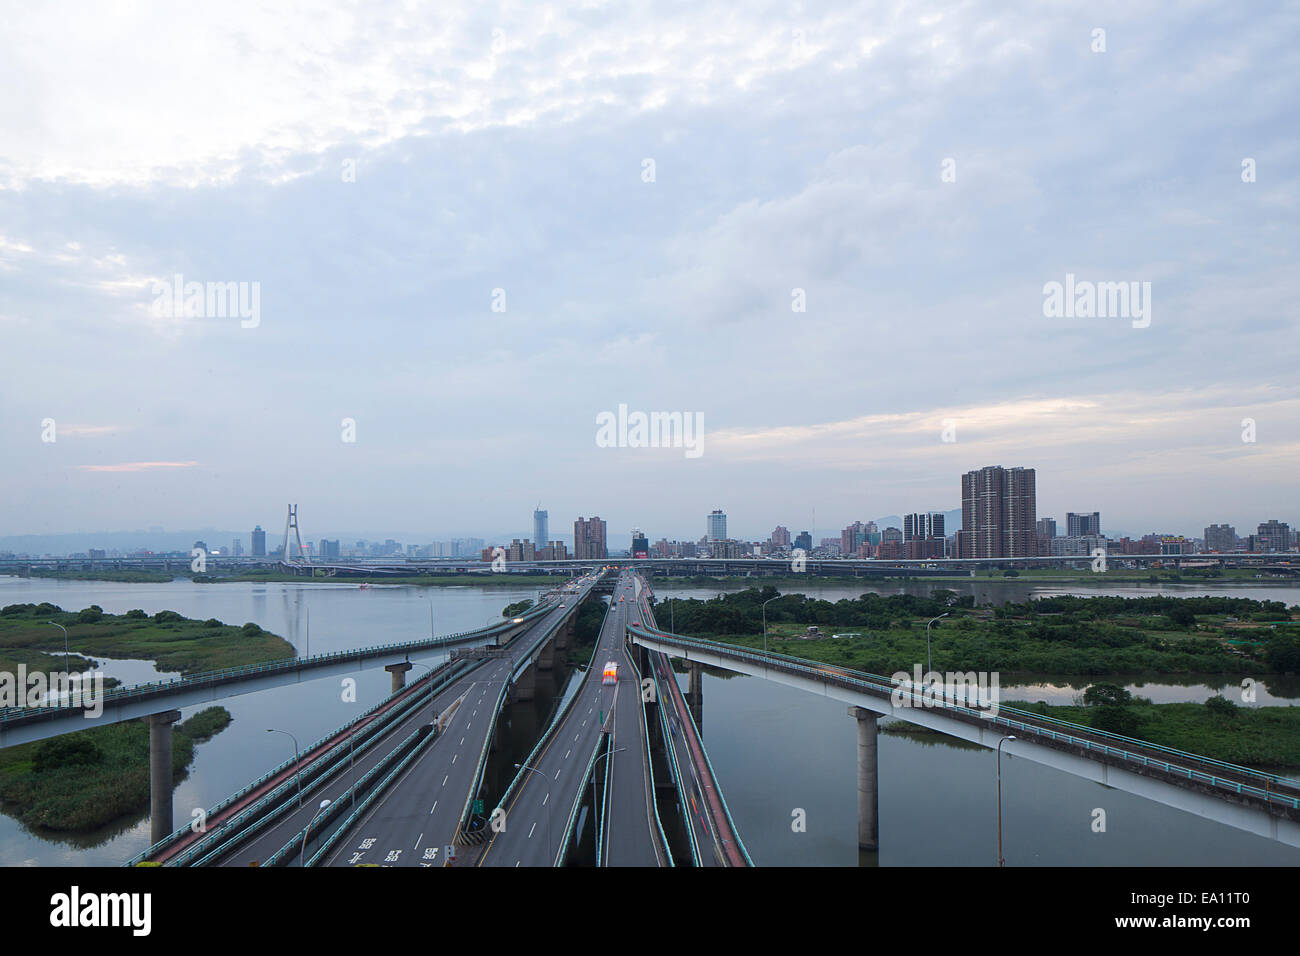 Elevated highways and river, Taipei, Taiwan, China - Stock Image